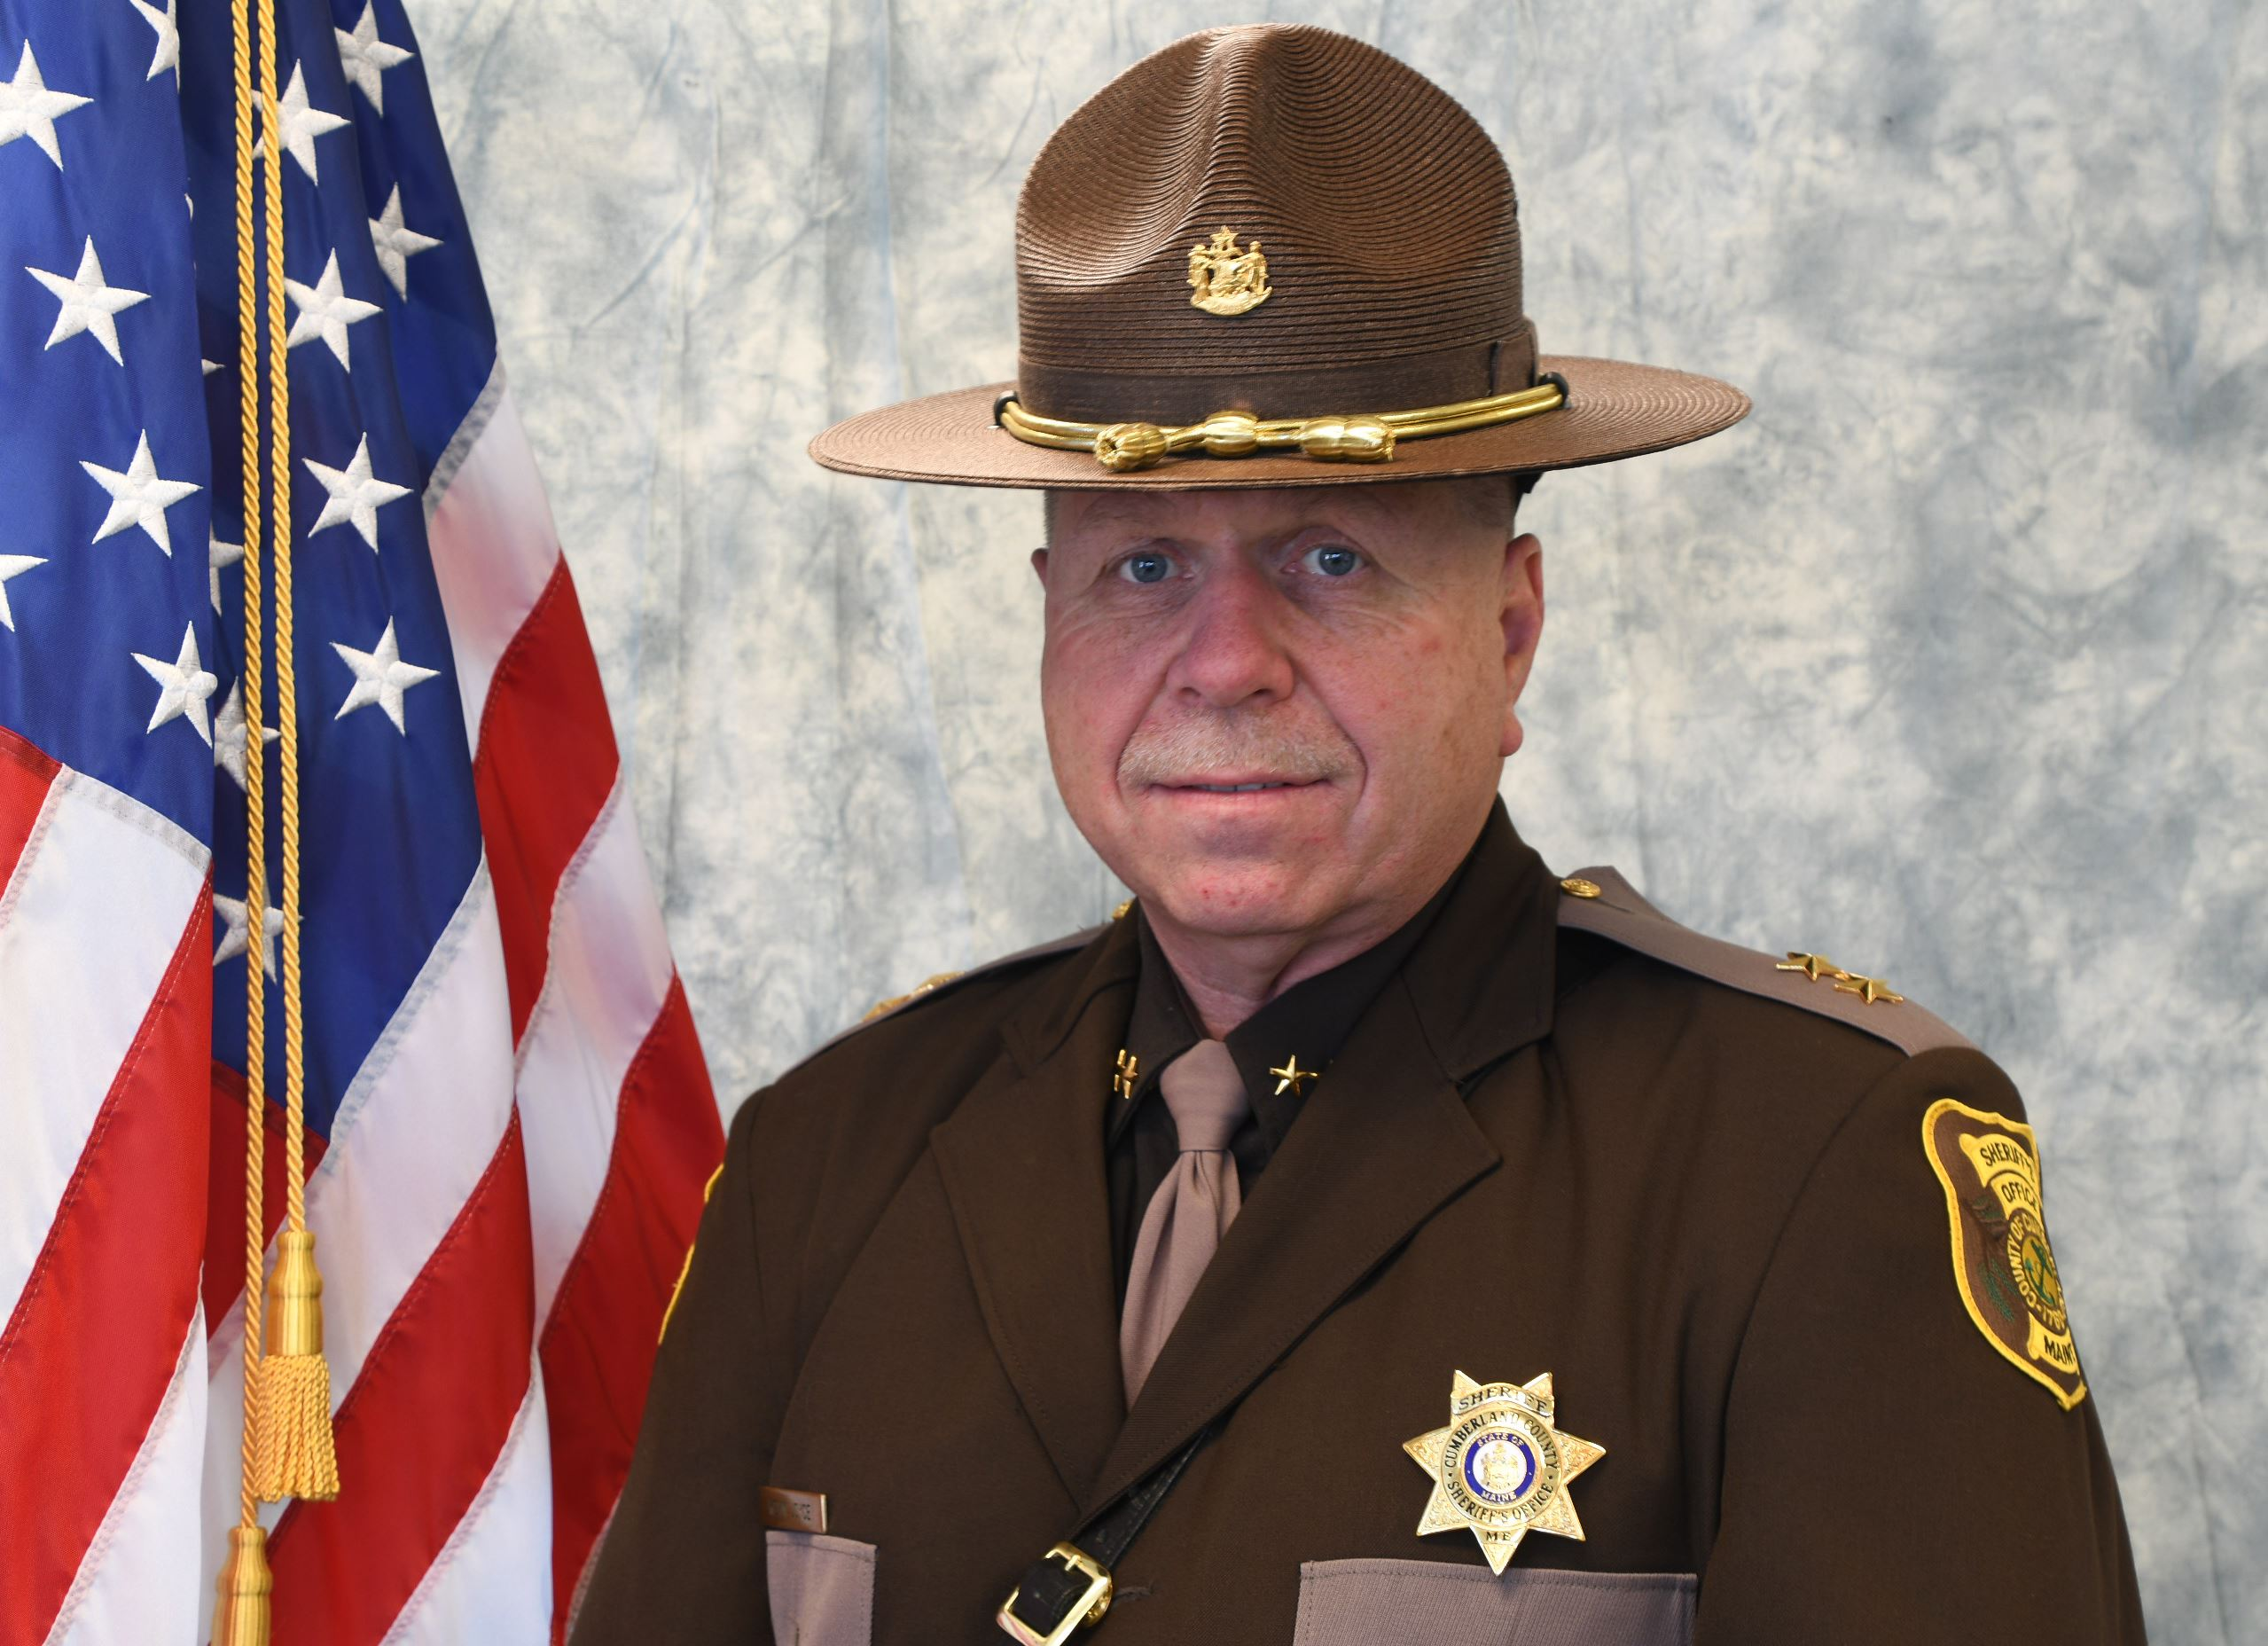 sheriff dress 2018